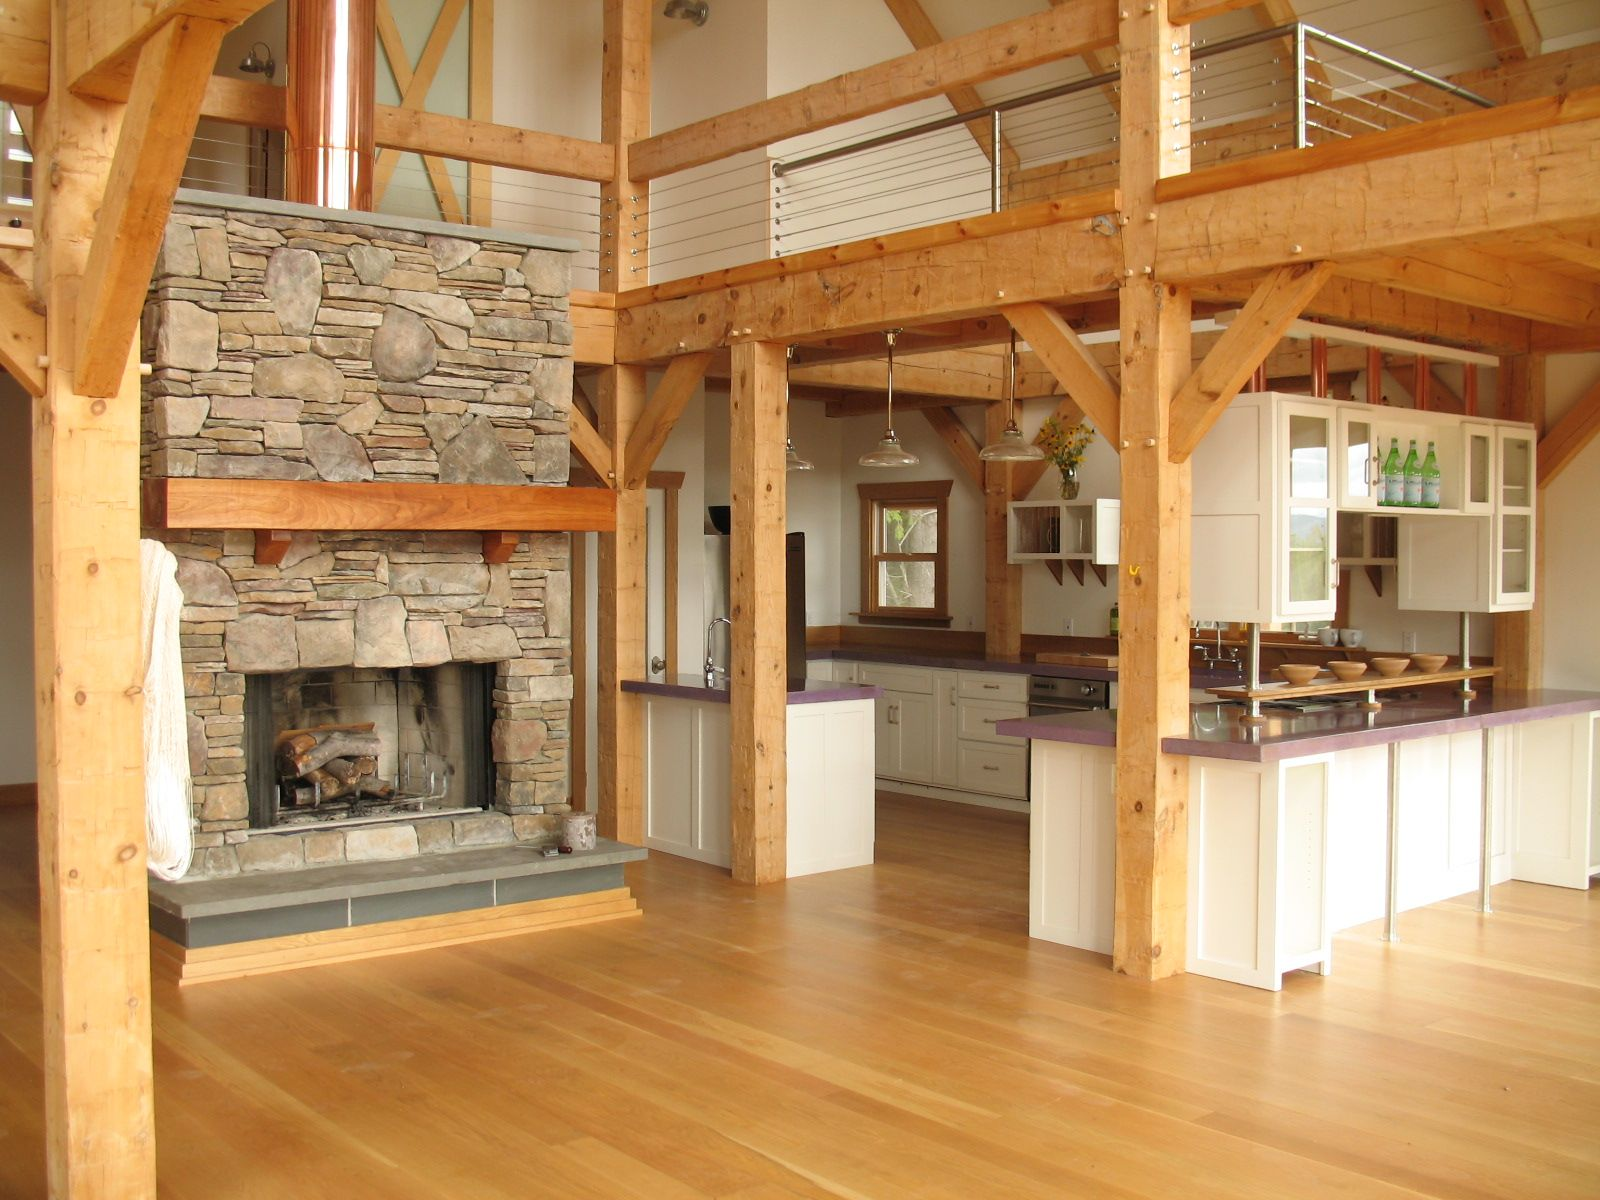 Homes that look like barns - Interior House With Wooden Pillars And Wooden Floor And Stone Fireplace Also Kitchen Room Designs Could Make A Pole Barn Home Look Like Timber Frame